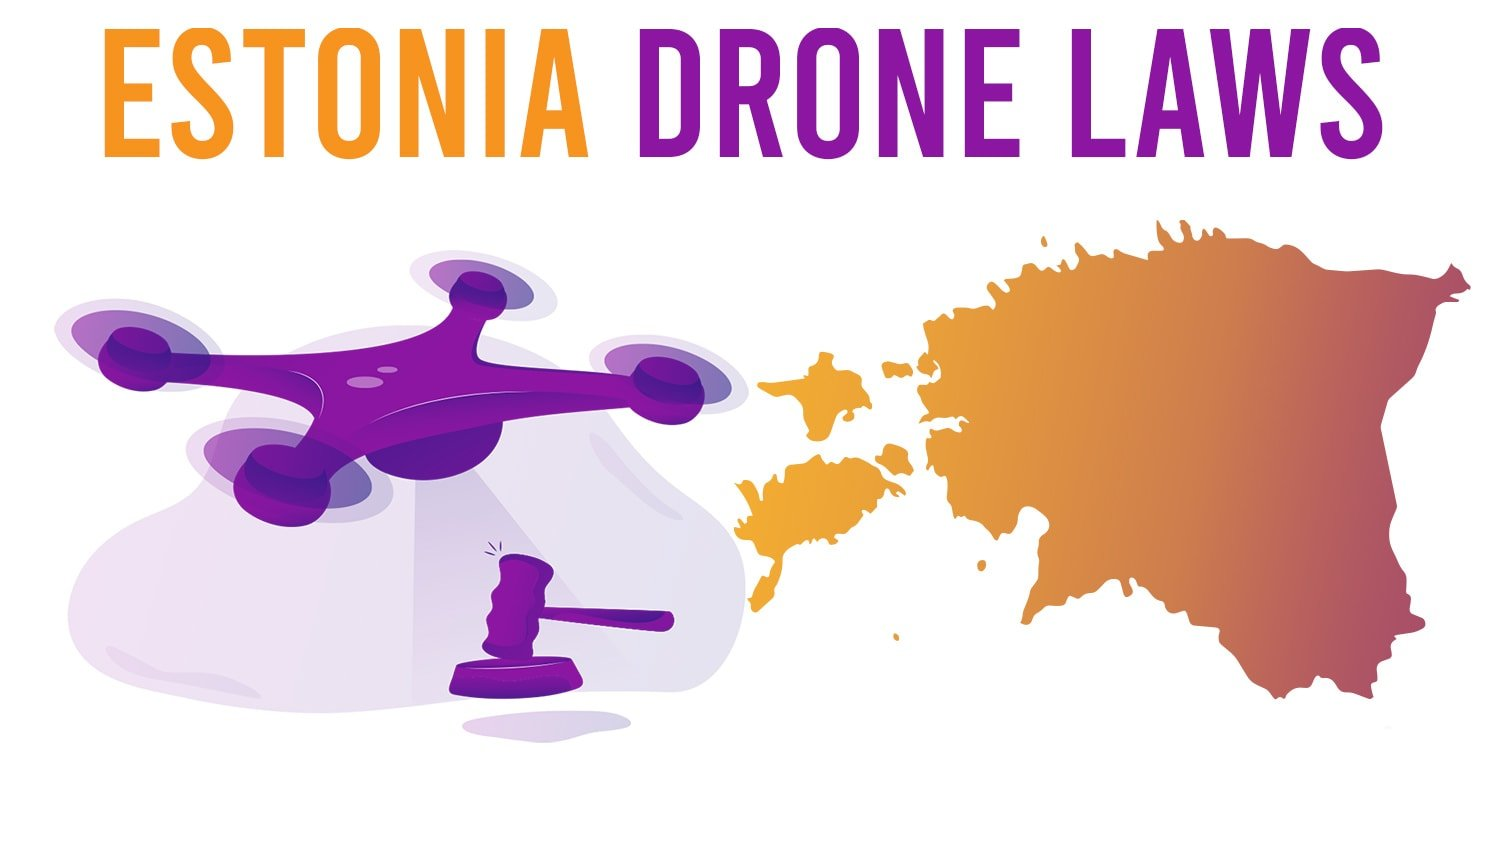 estonia-drone-laws.jpg